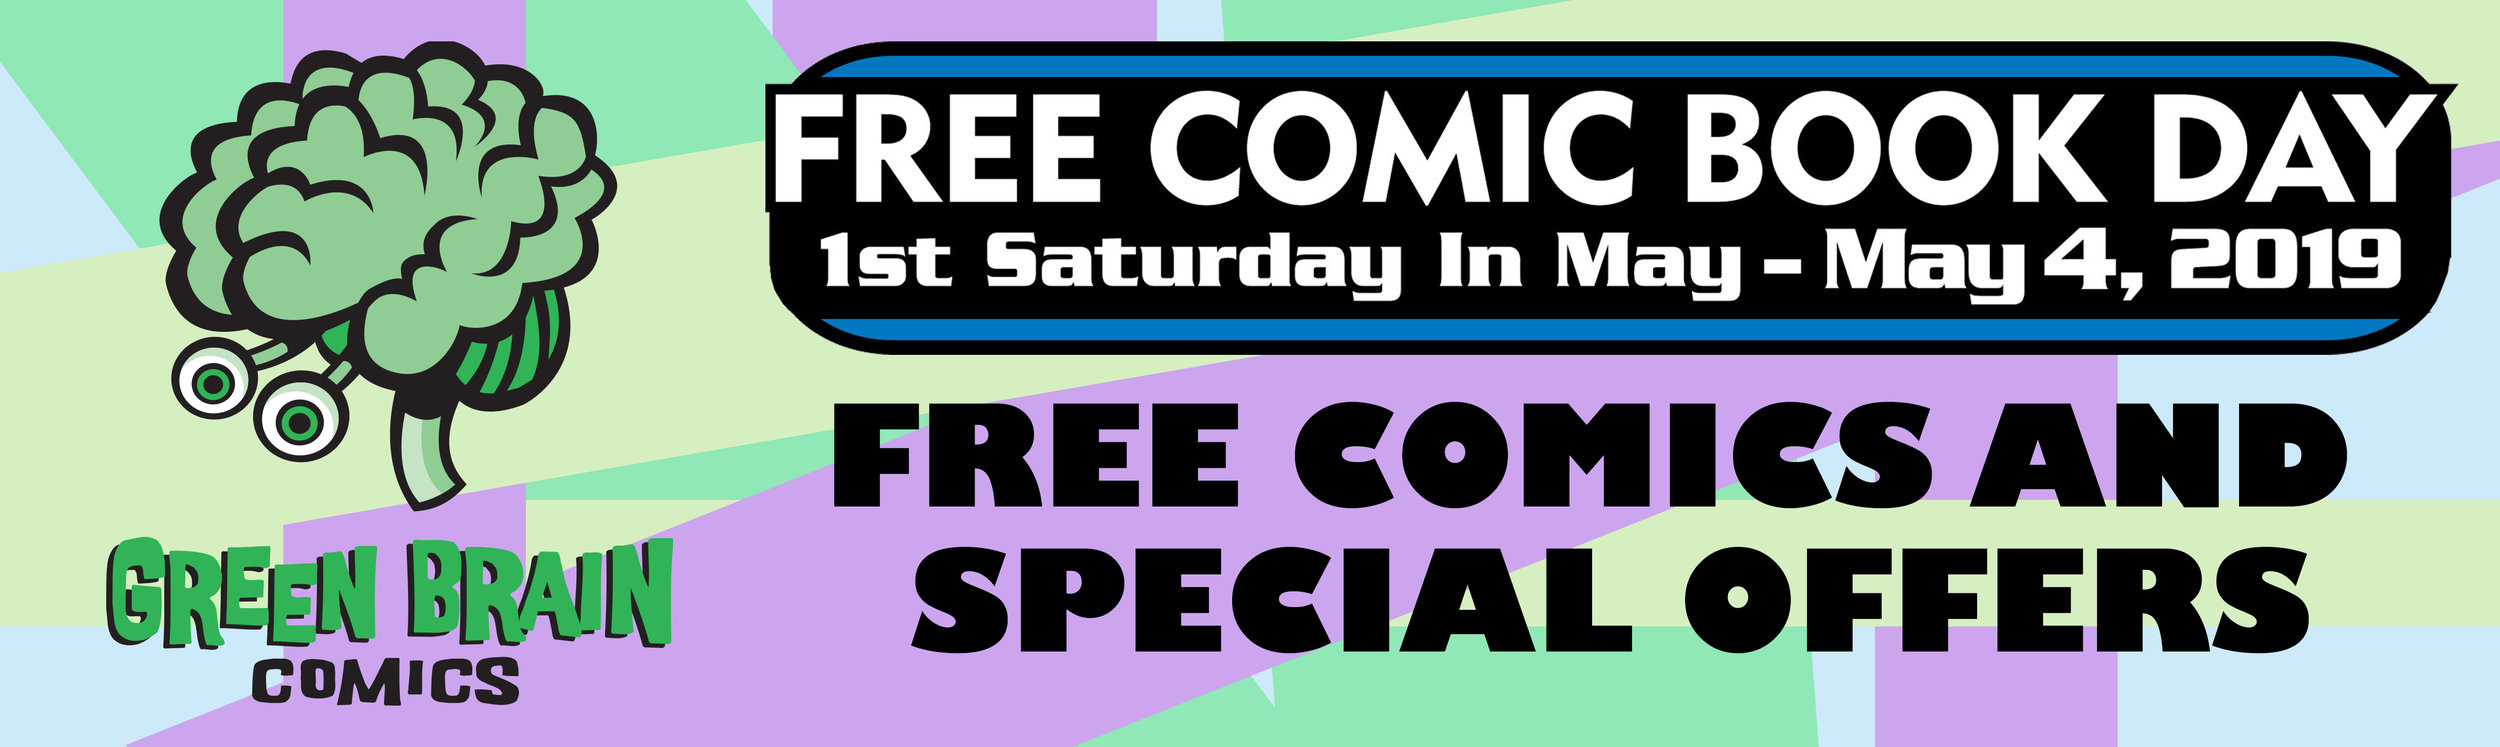 FCBD Page Banner FREE COMICS AND SPECIAL OFFERS.jpg